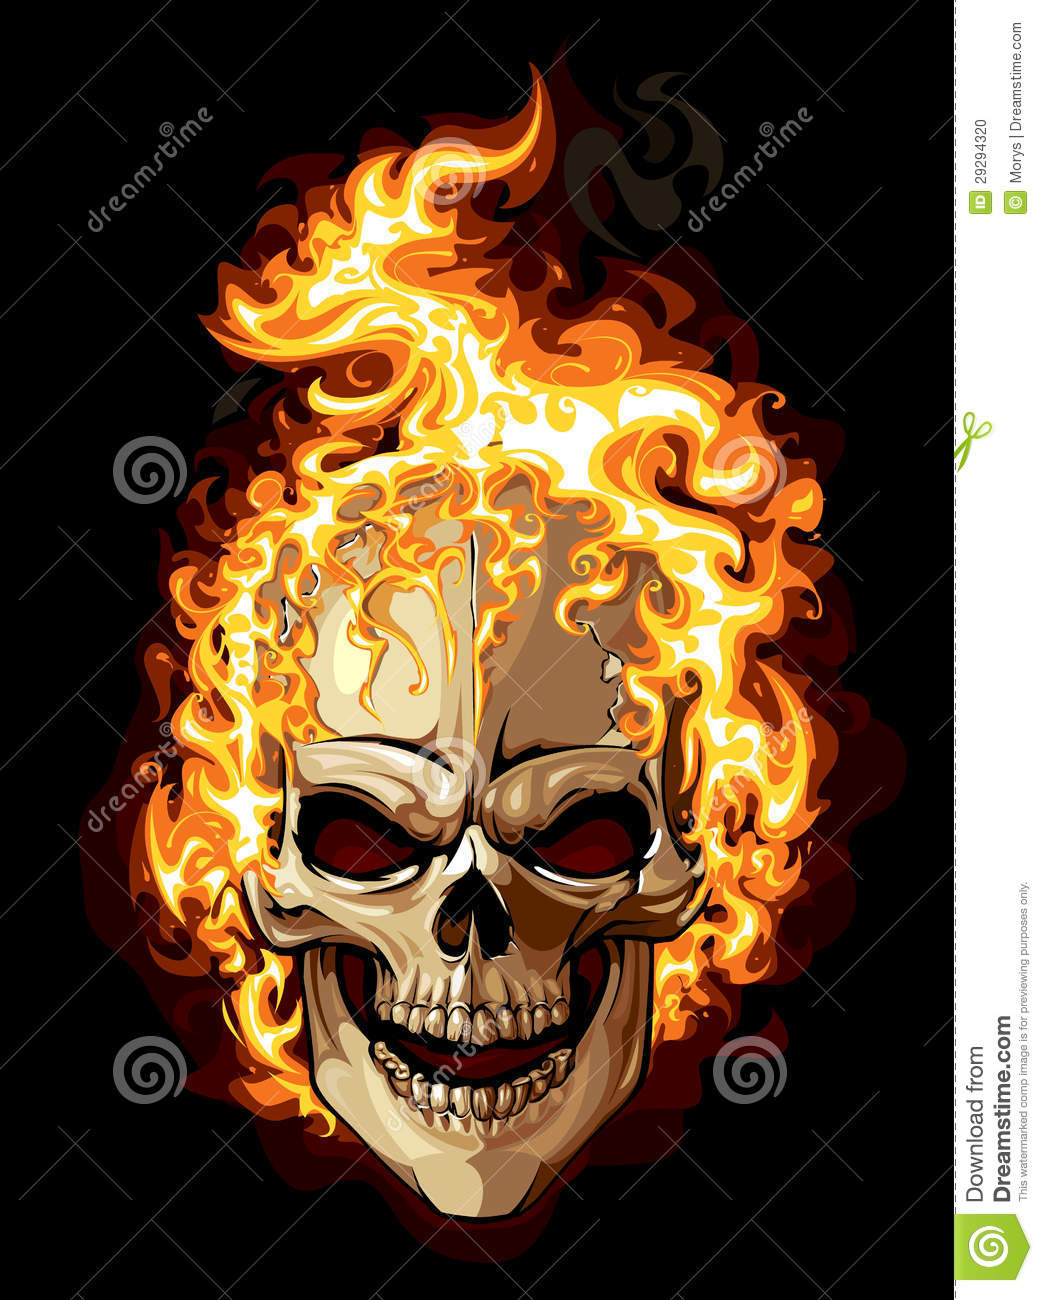 Burning skull on black background. Tattoo style. EPS 8 illustration.